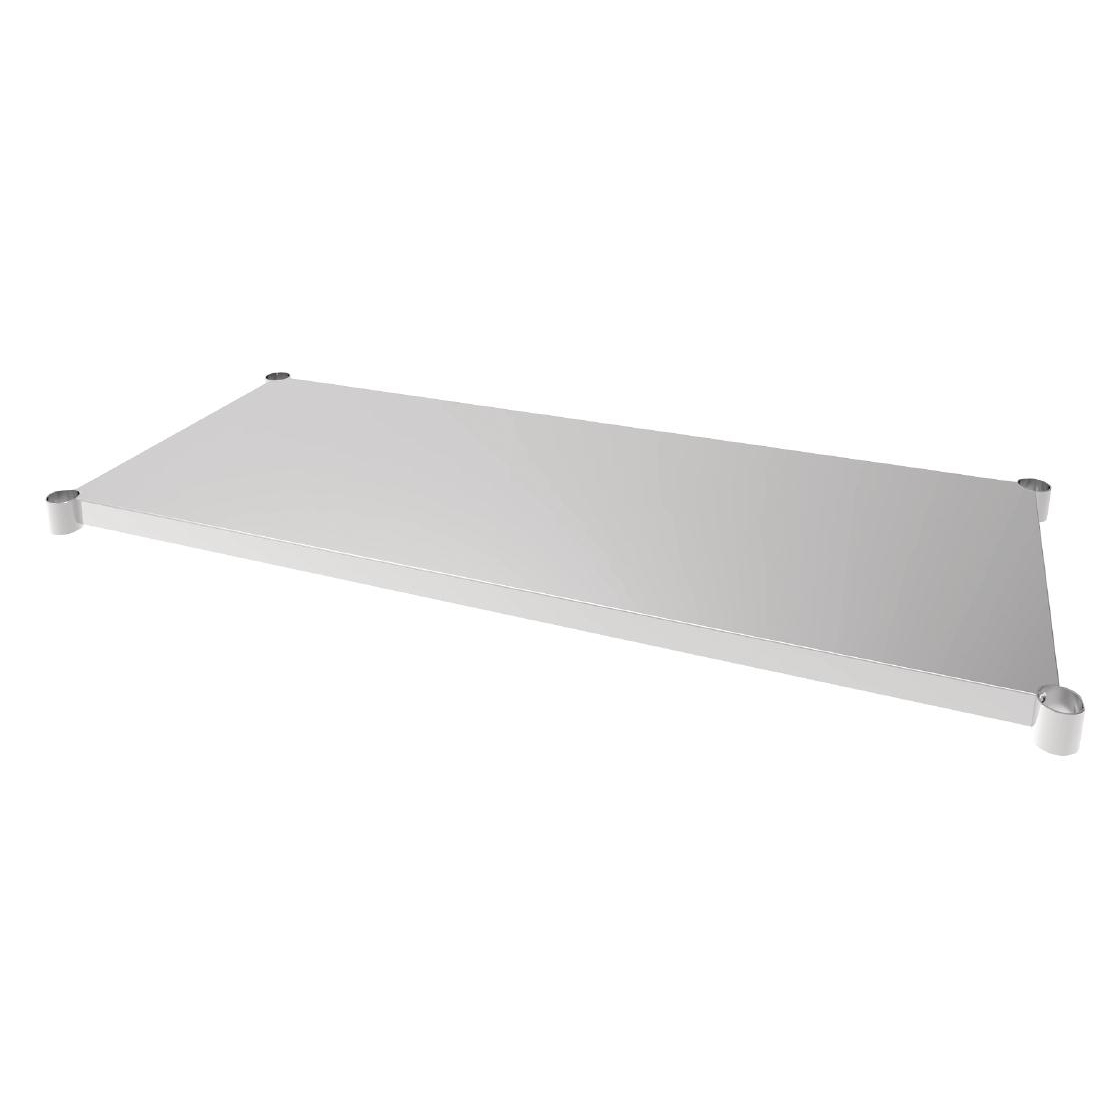 Vogue Stainless Steel Table Shelf 700x1500mm